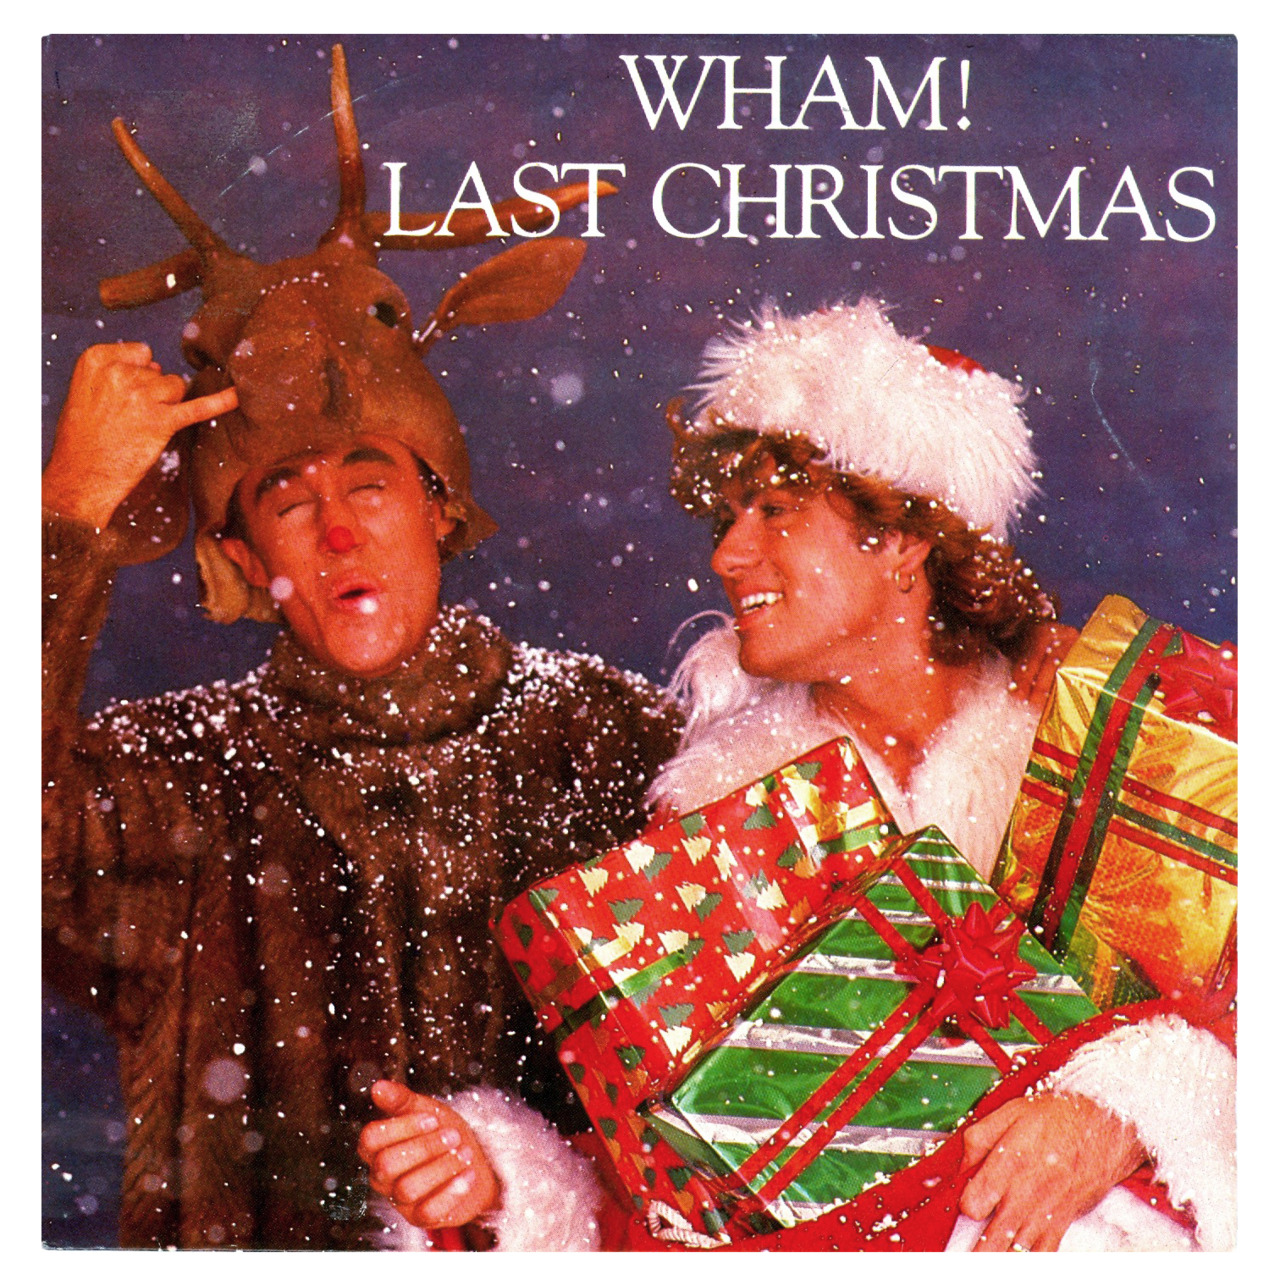 Wham Last Christmas | SWAGGER, NOT STYLE